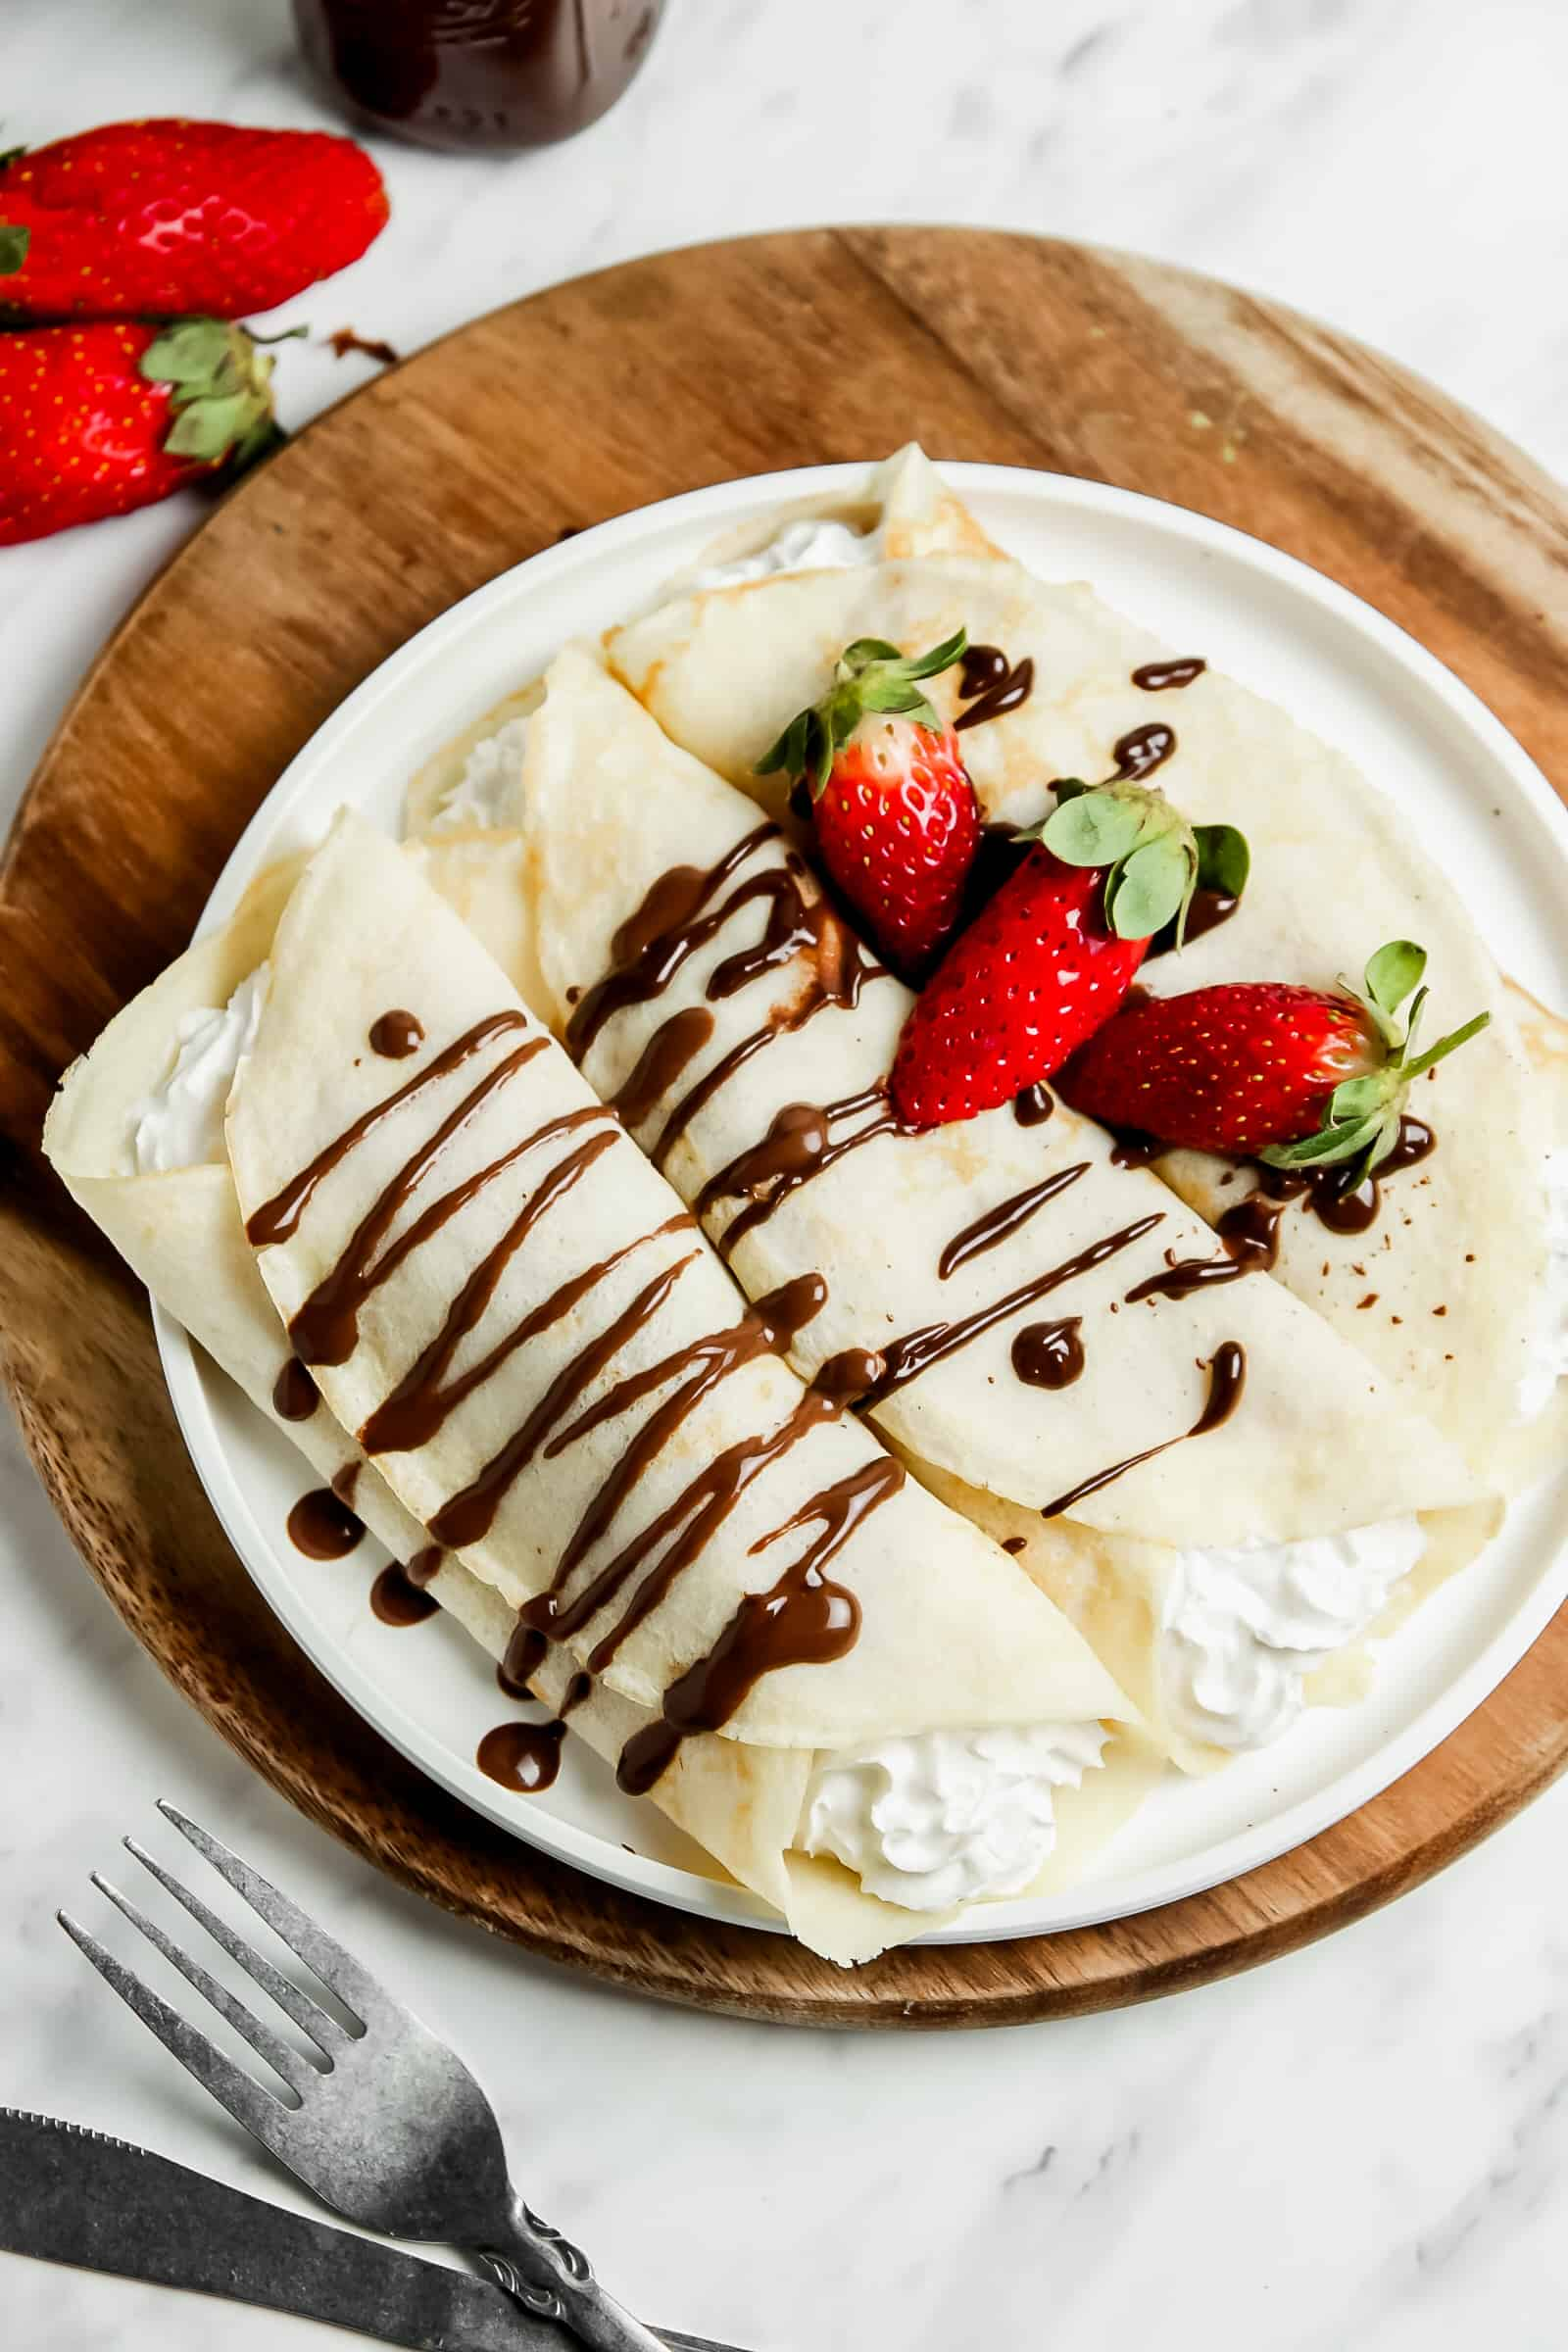 two crepes rolled and filled with whipped cream